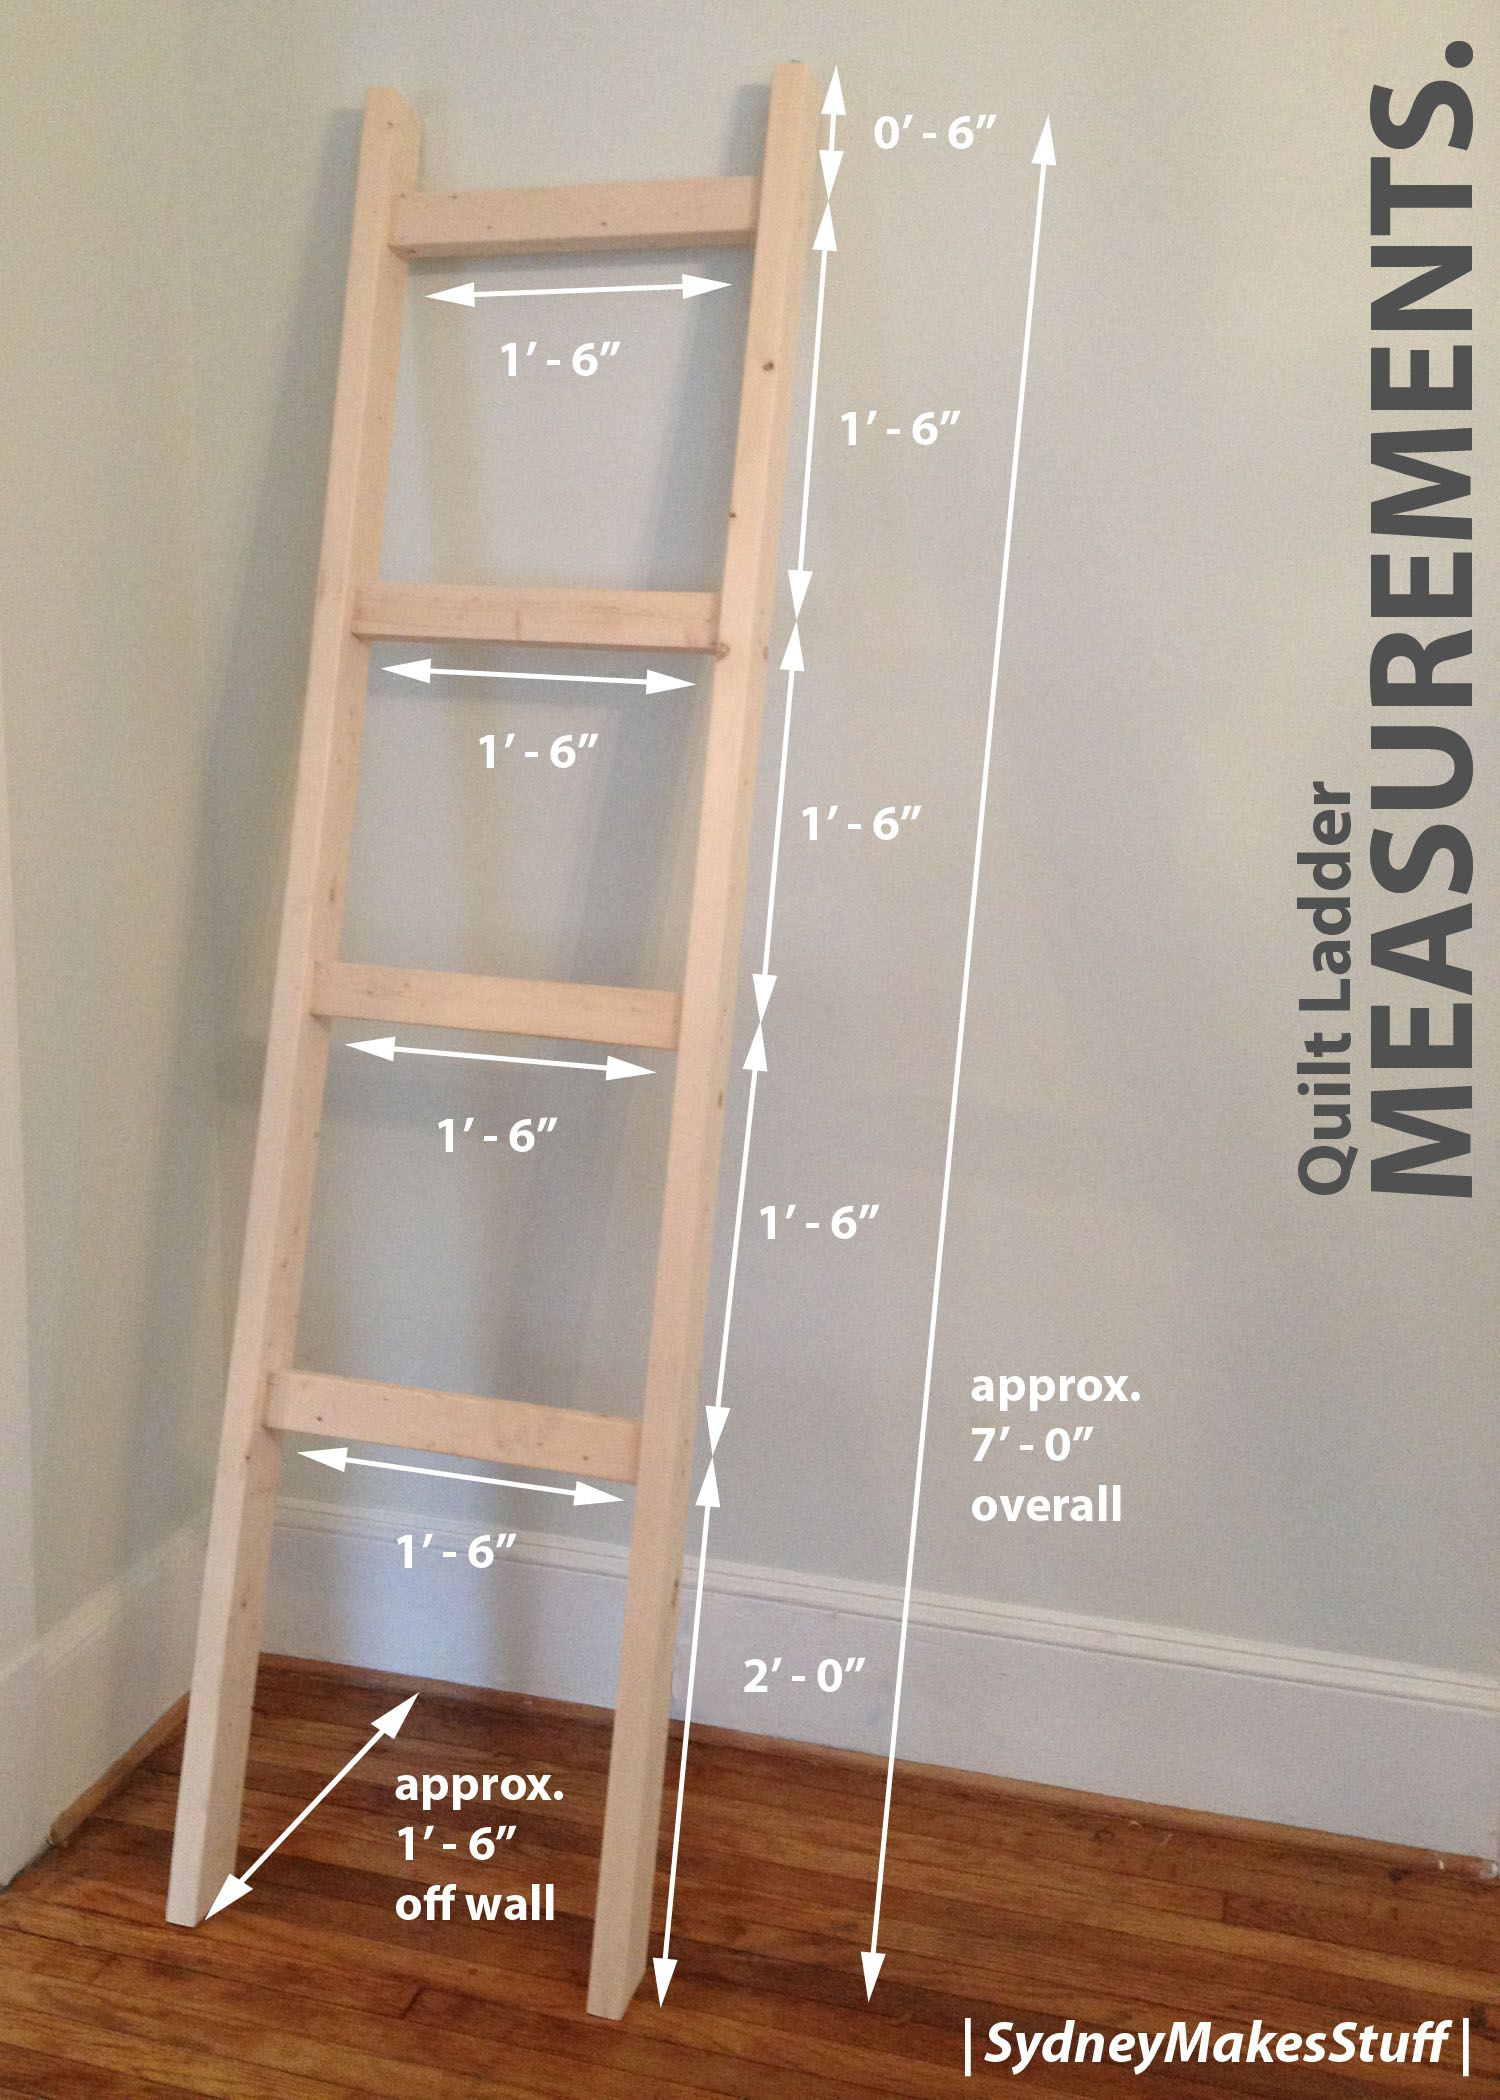 Diy Quilt Ladder Measurements And Dimensions Sydneymakesstuff More